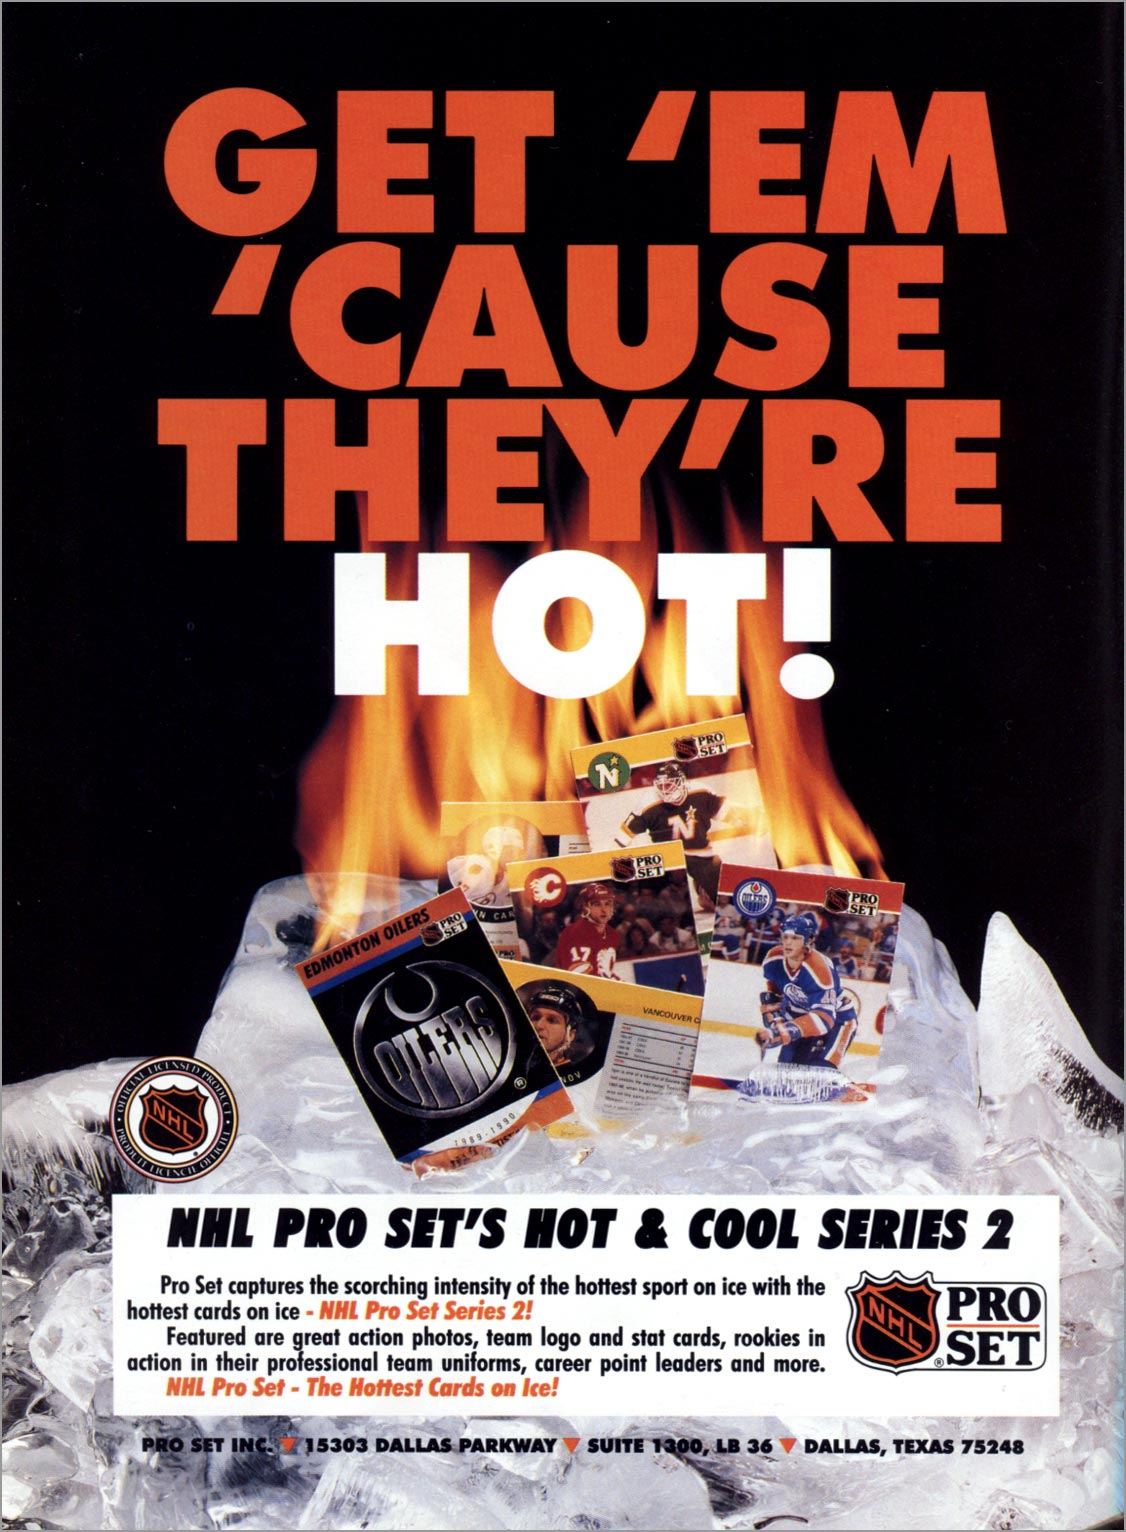 1990-91 Pro Set Hockey Series 2 advertisement